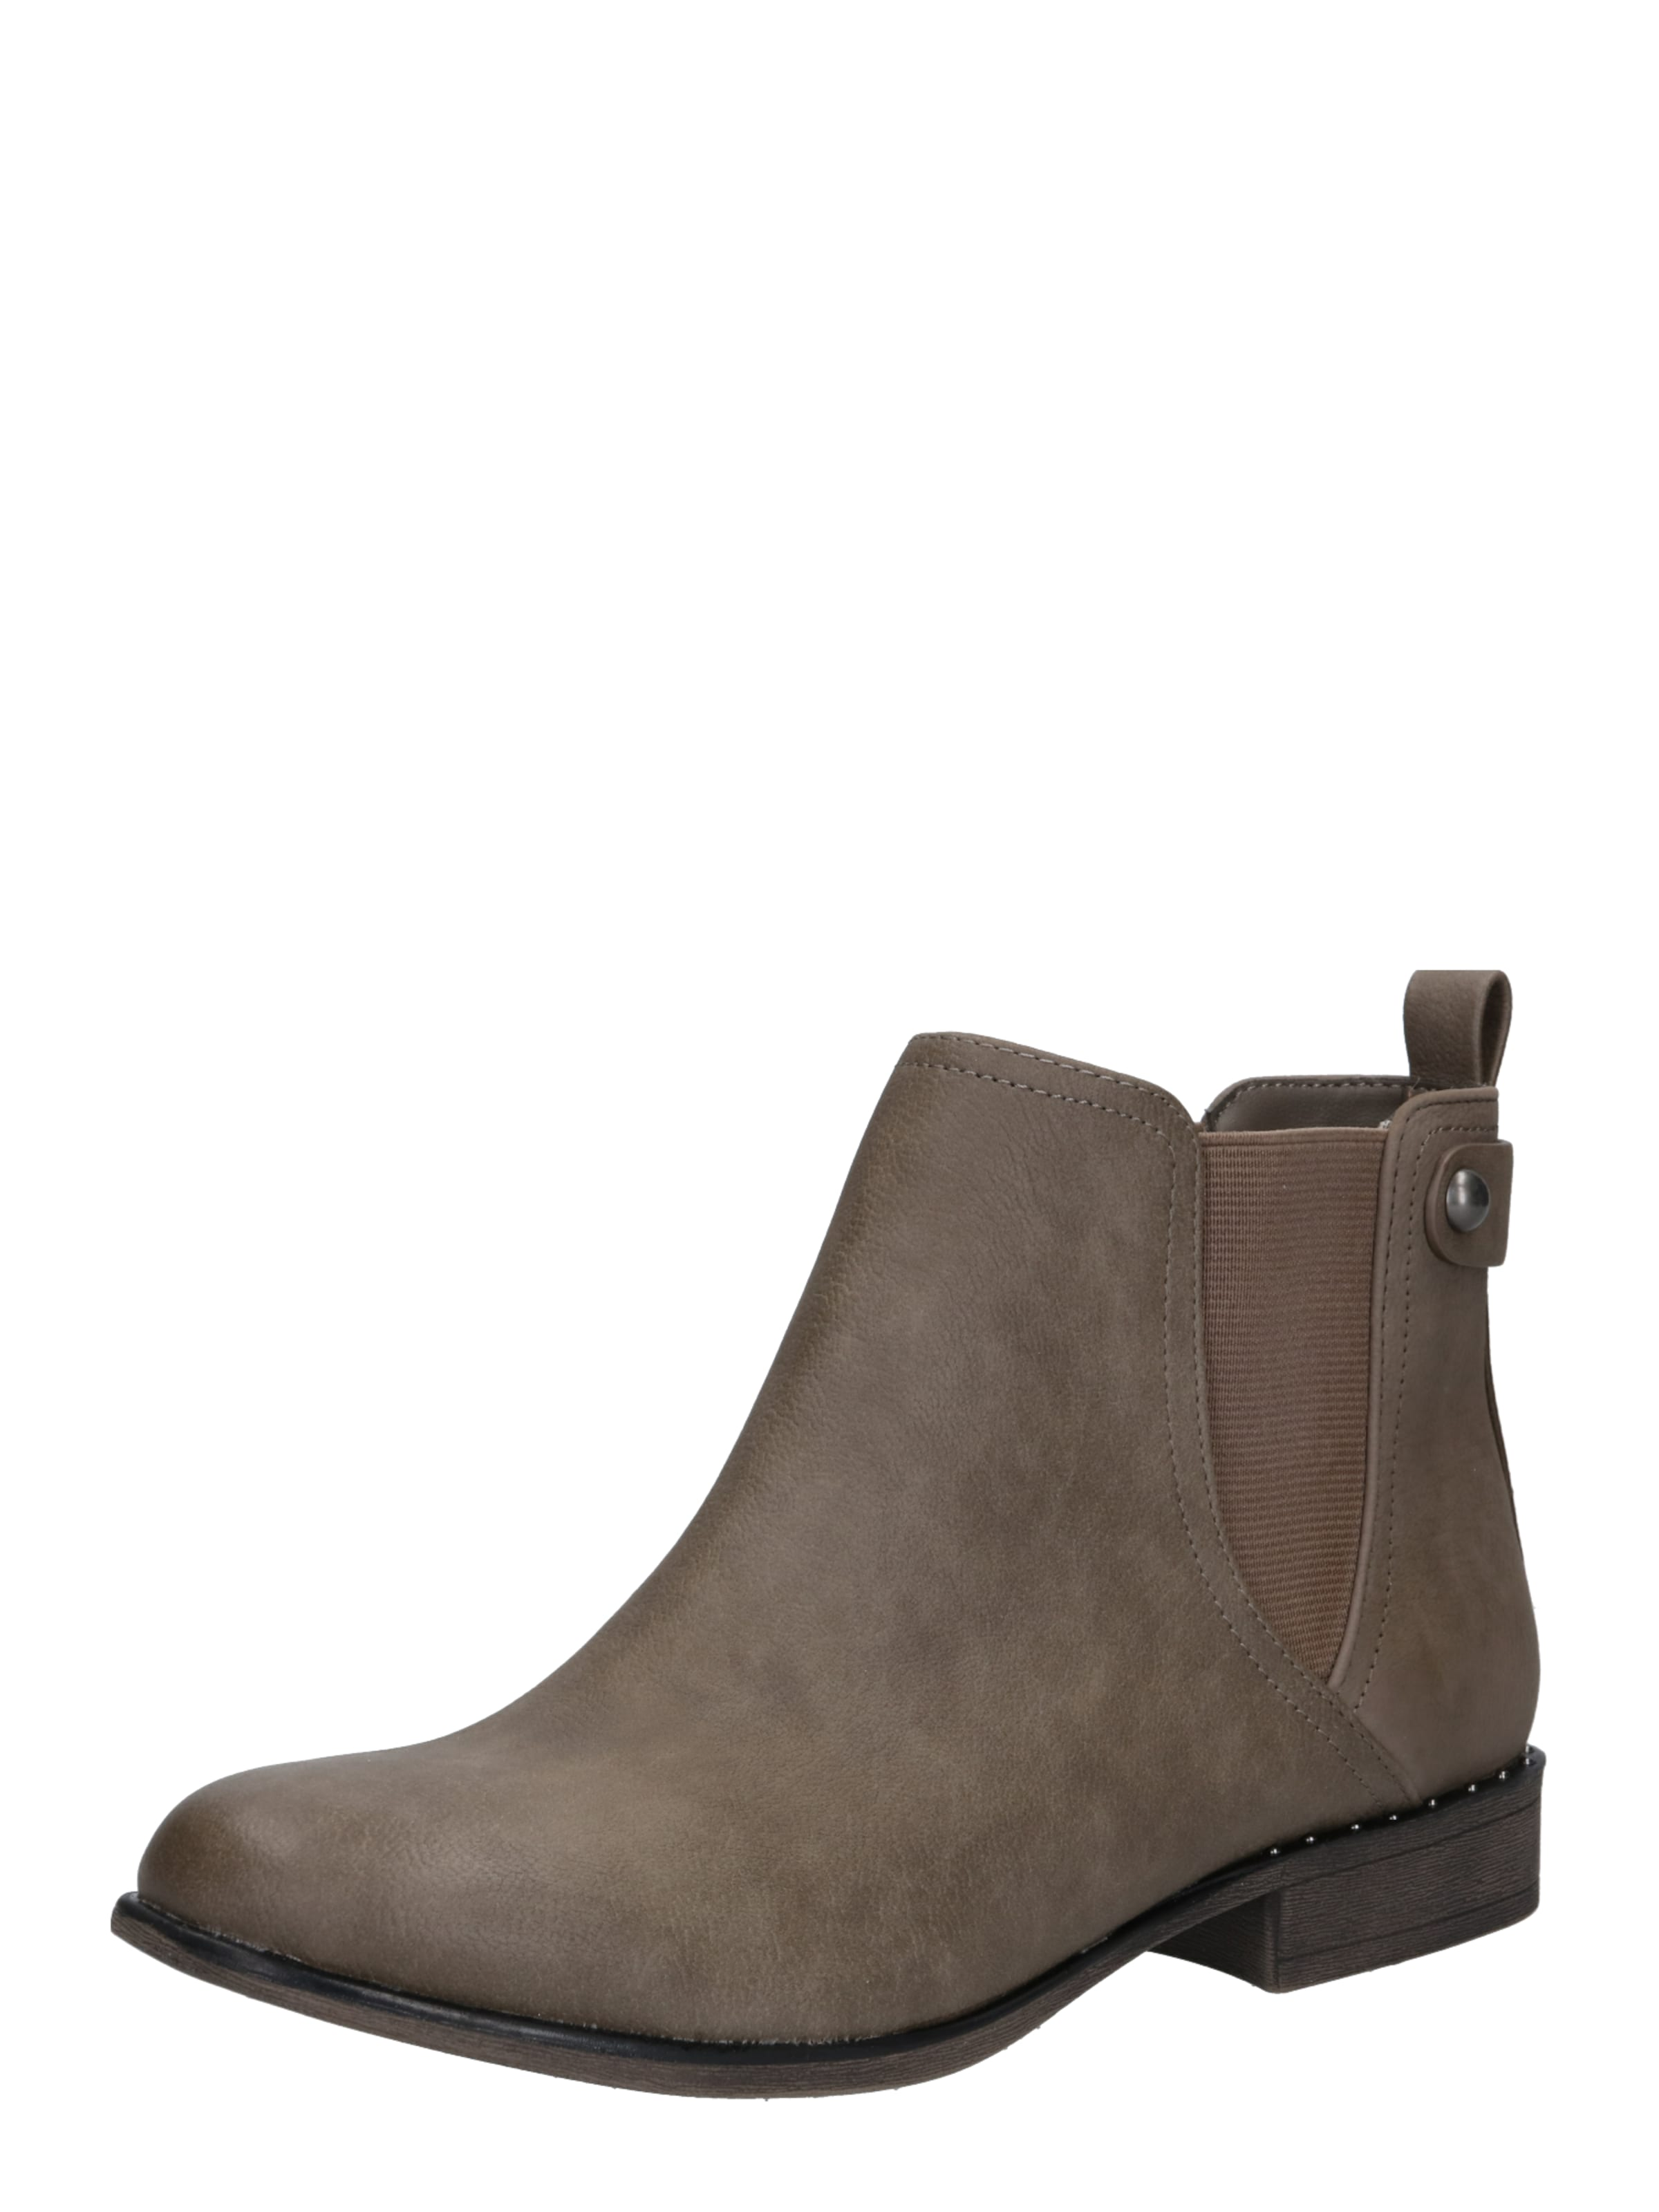 It Chelsea In Braun 'forteau' Call Spring Boots rxQBoeWdC